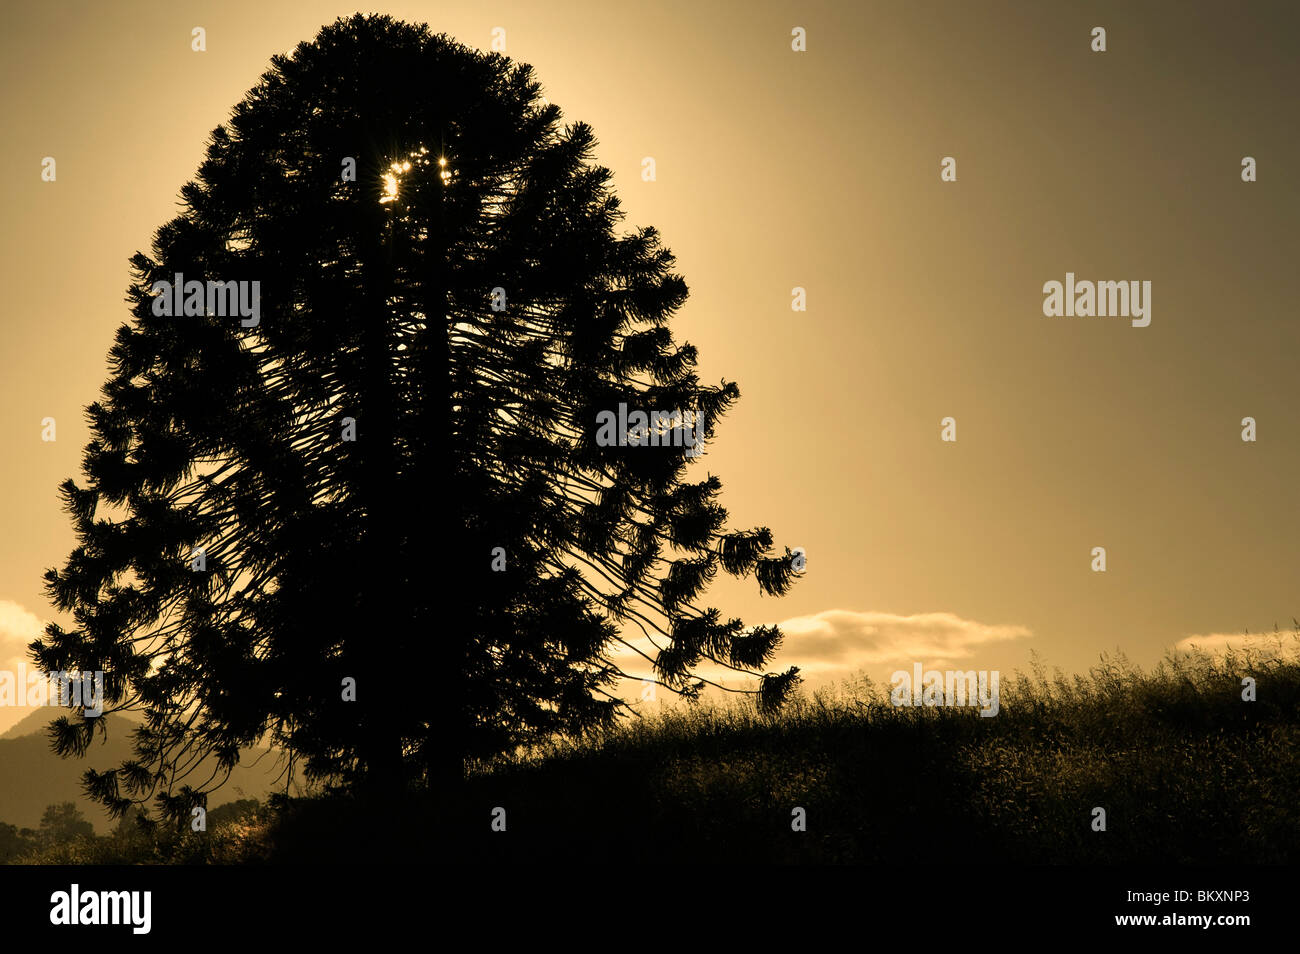 Bunya Pine - a native to South-East Queensland, Australia. - Stock Image